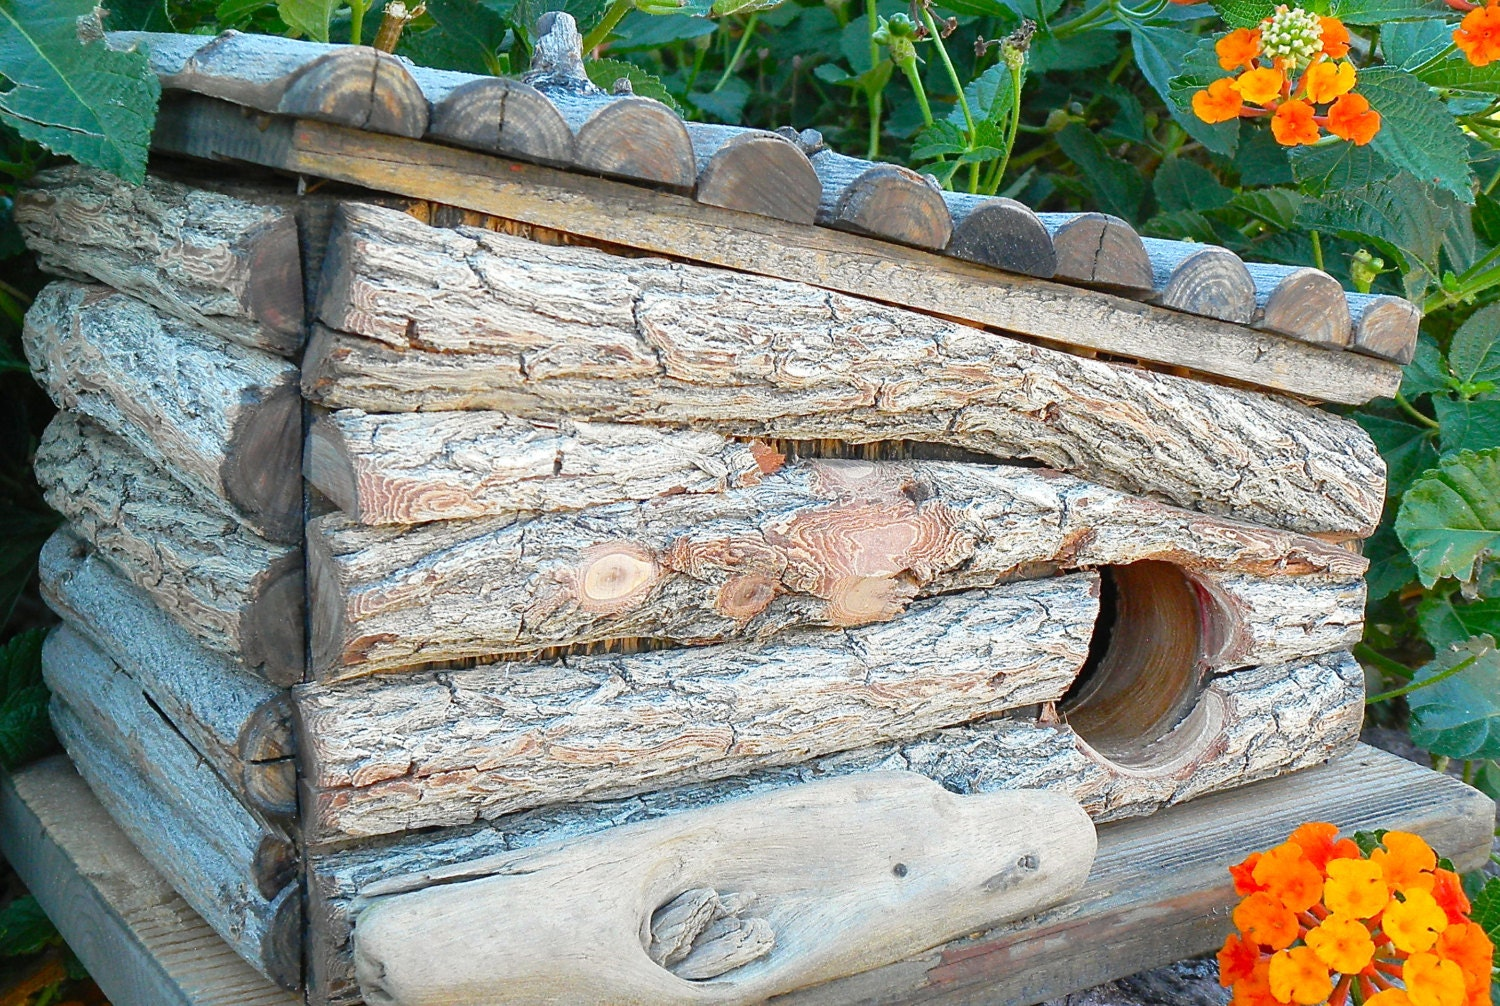 rustic log cabin birdhouses - photo #34